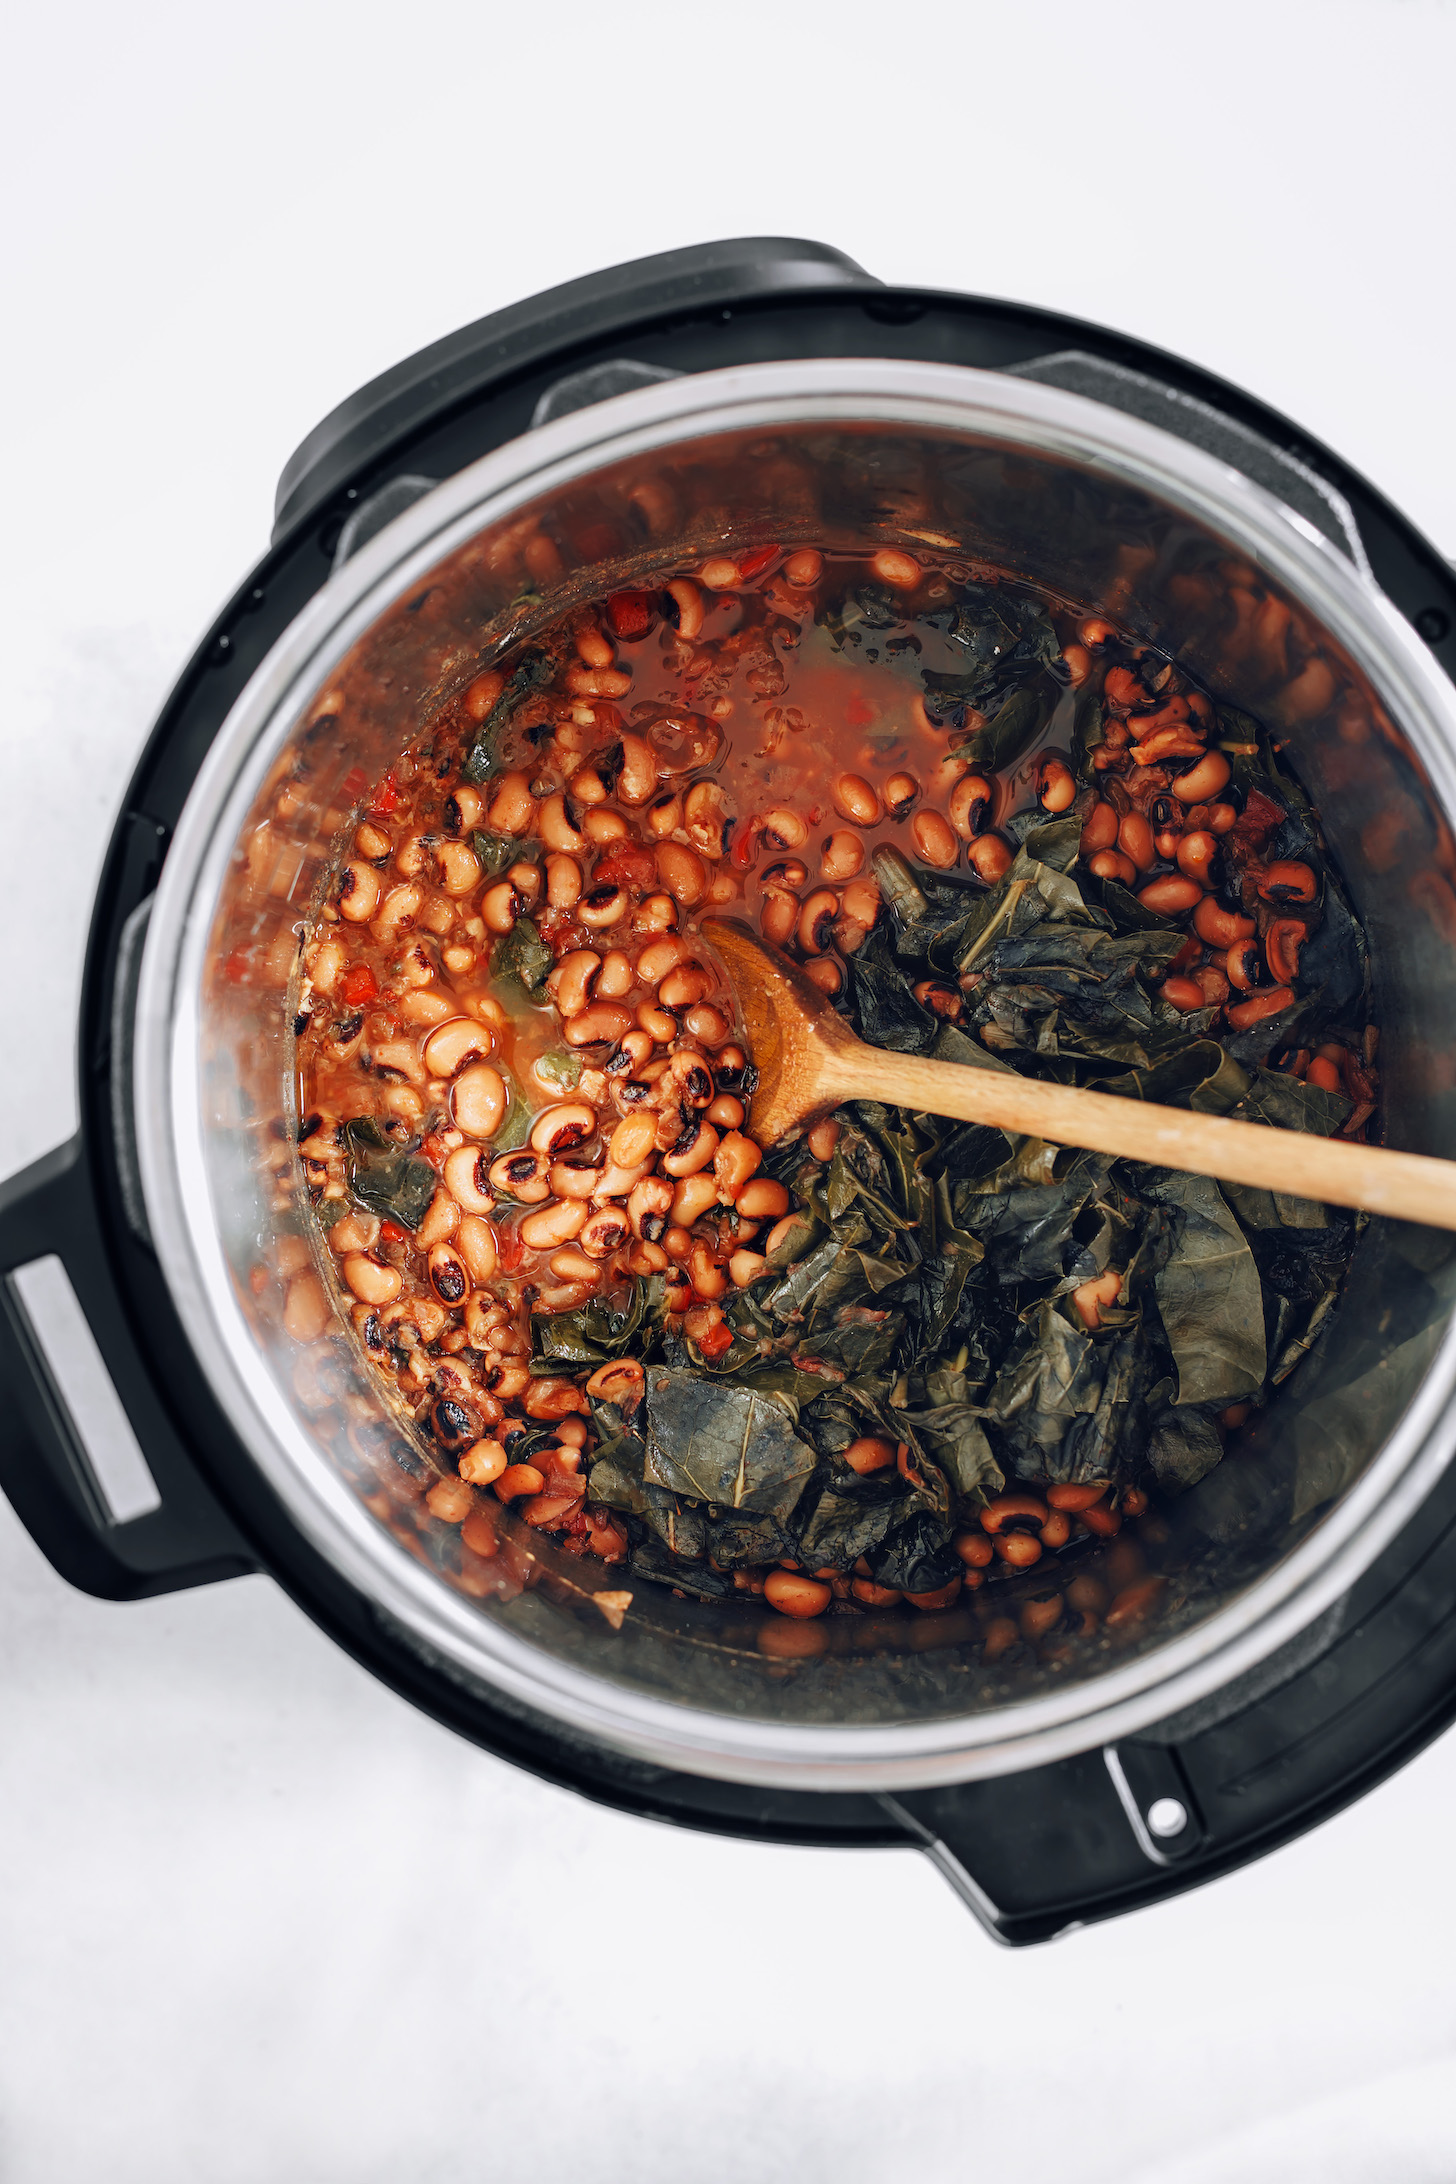 Black eyed peas and greens in an Instant Pot